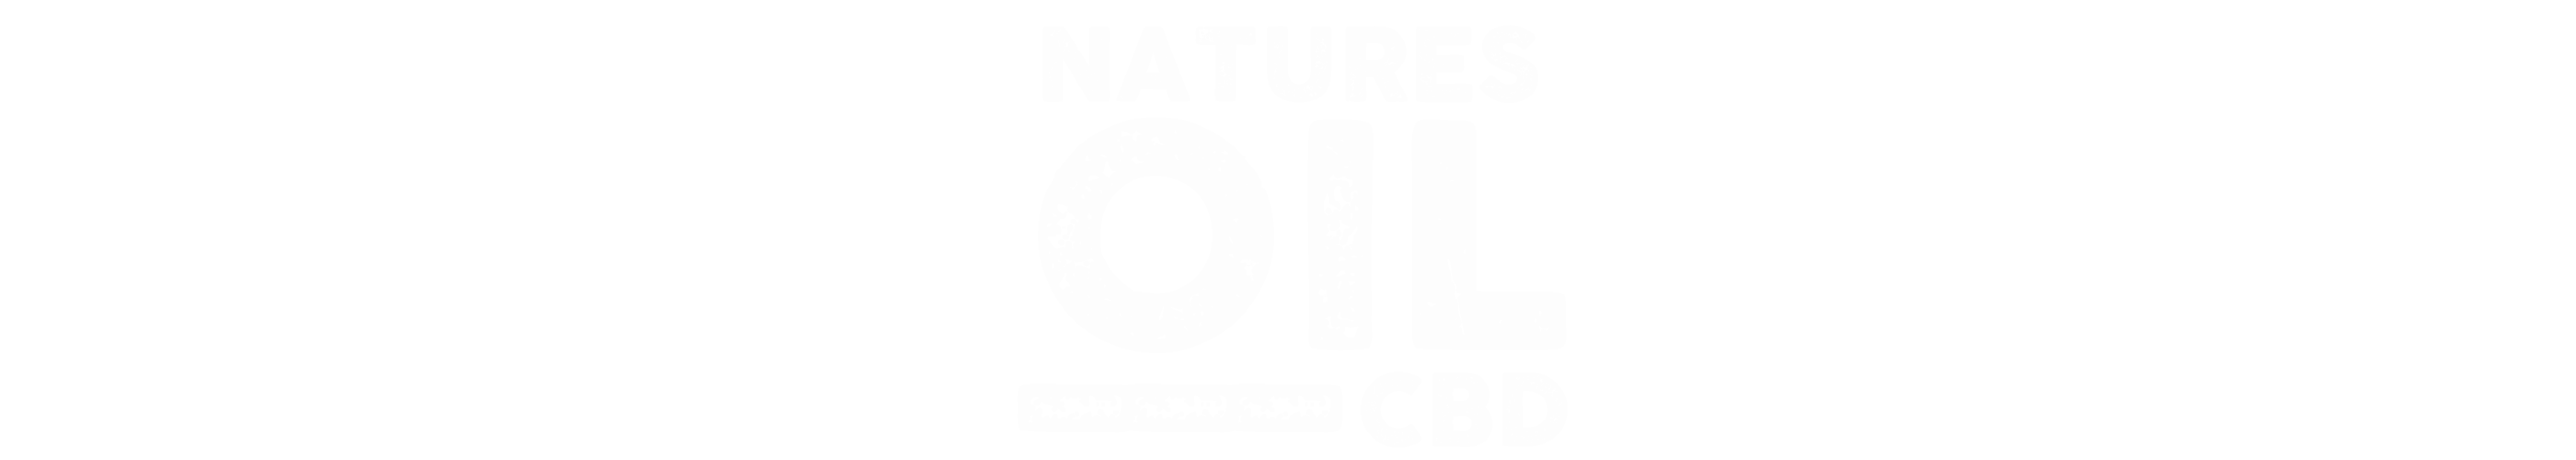 Natures oil